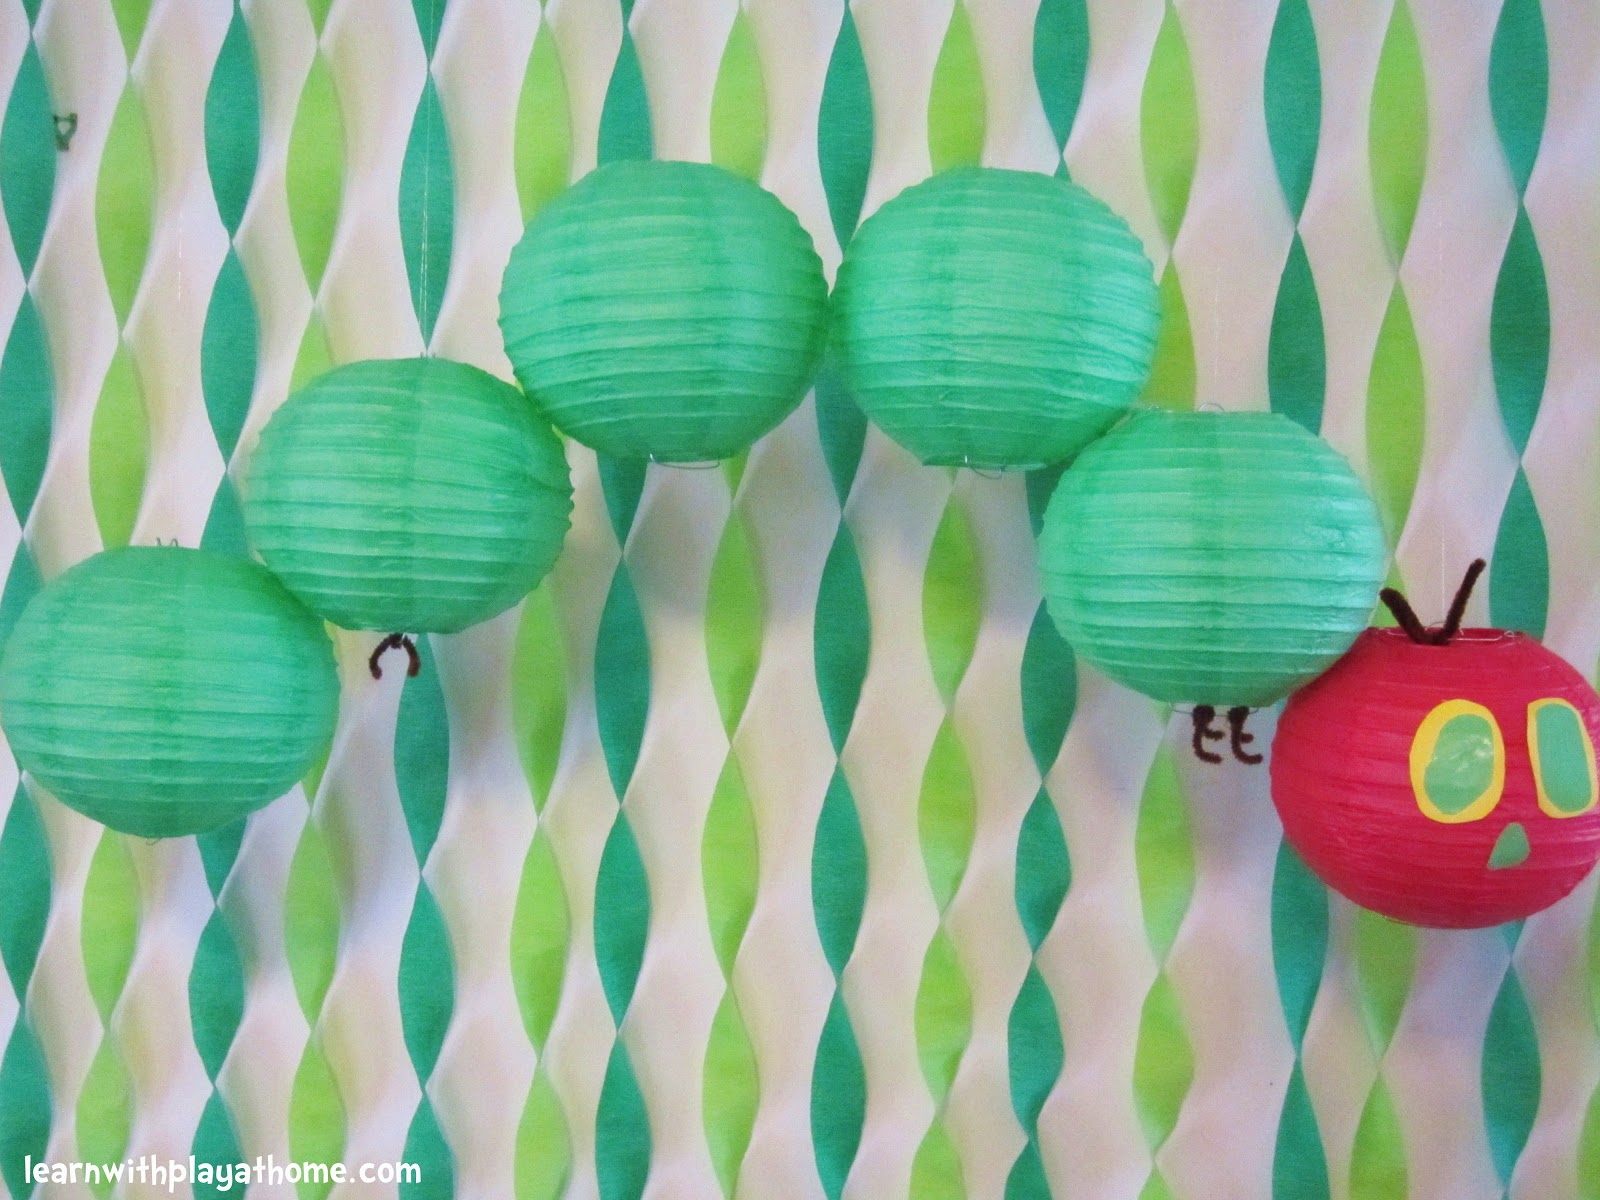 Materials ... & Learn with Play at Home: DIY Party Decorations